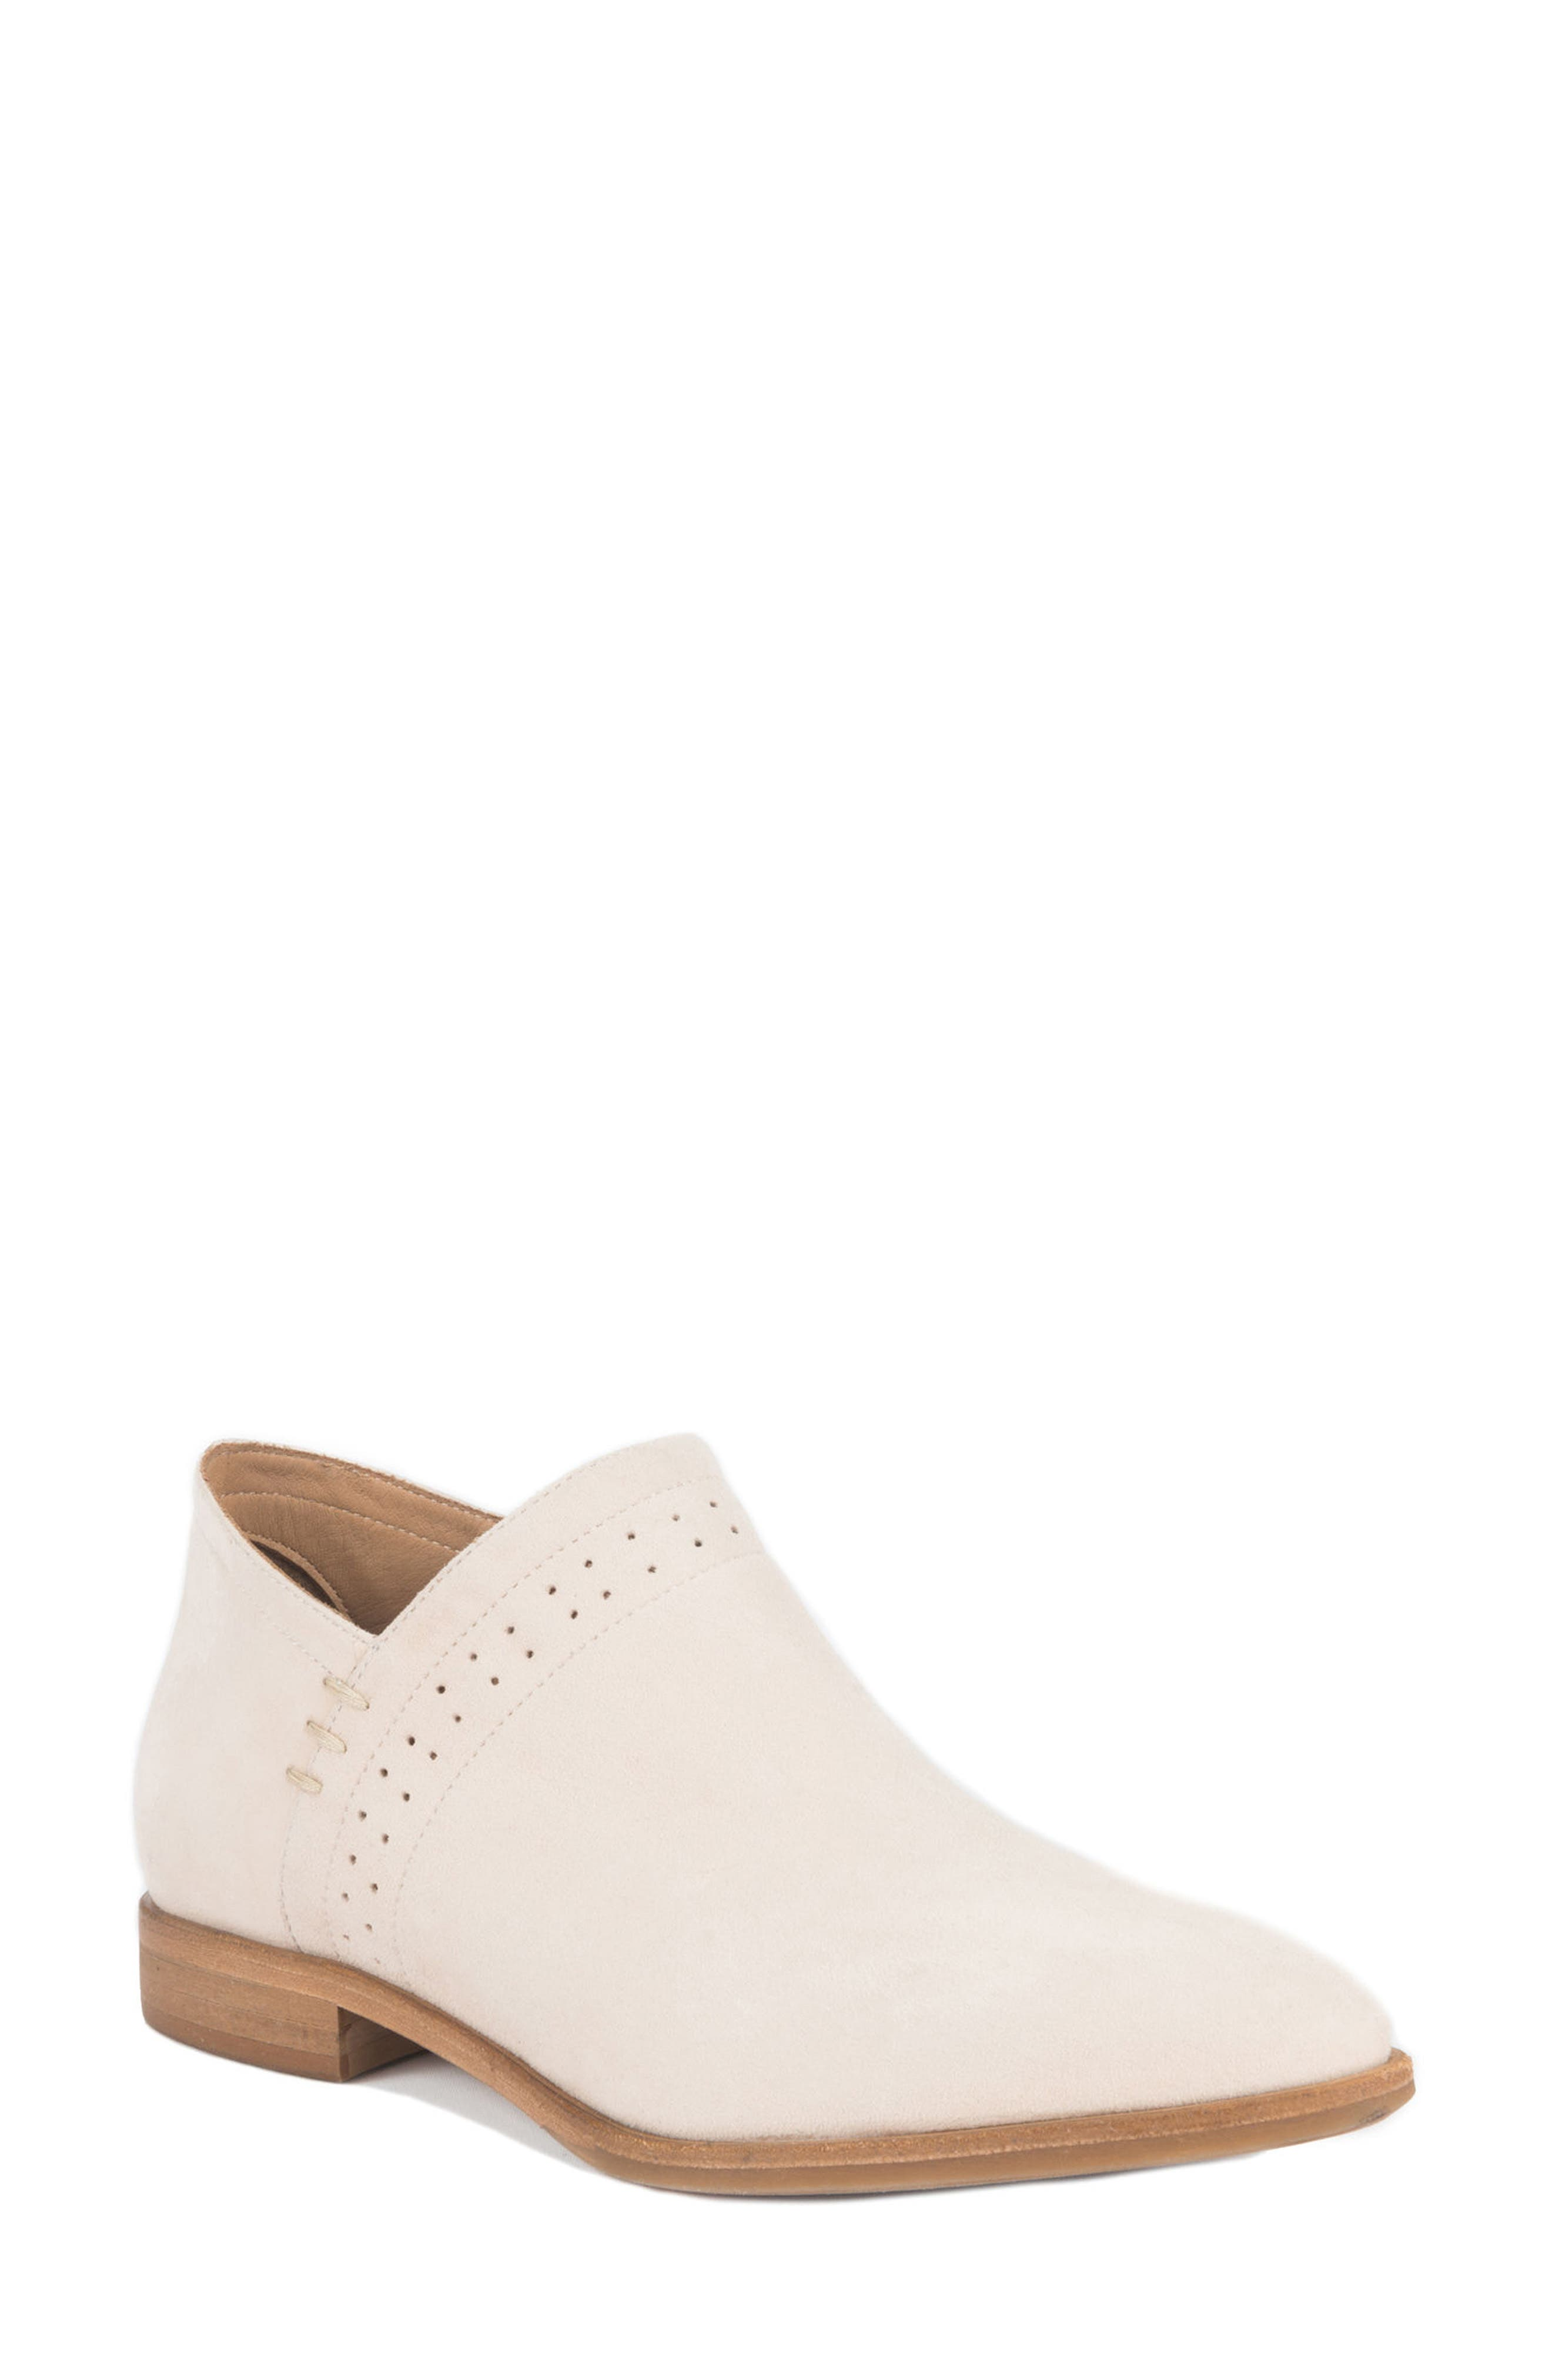 Florence Water Resistant Bootie,                             Main thumbnail 1, color,                             Bone